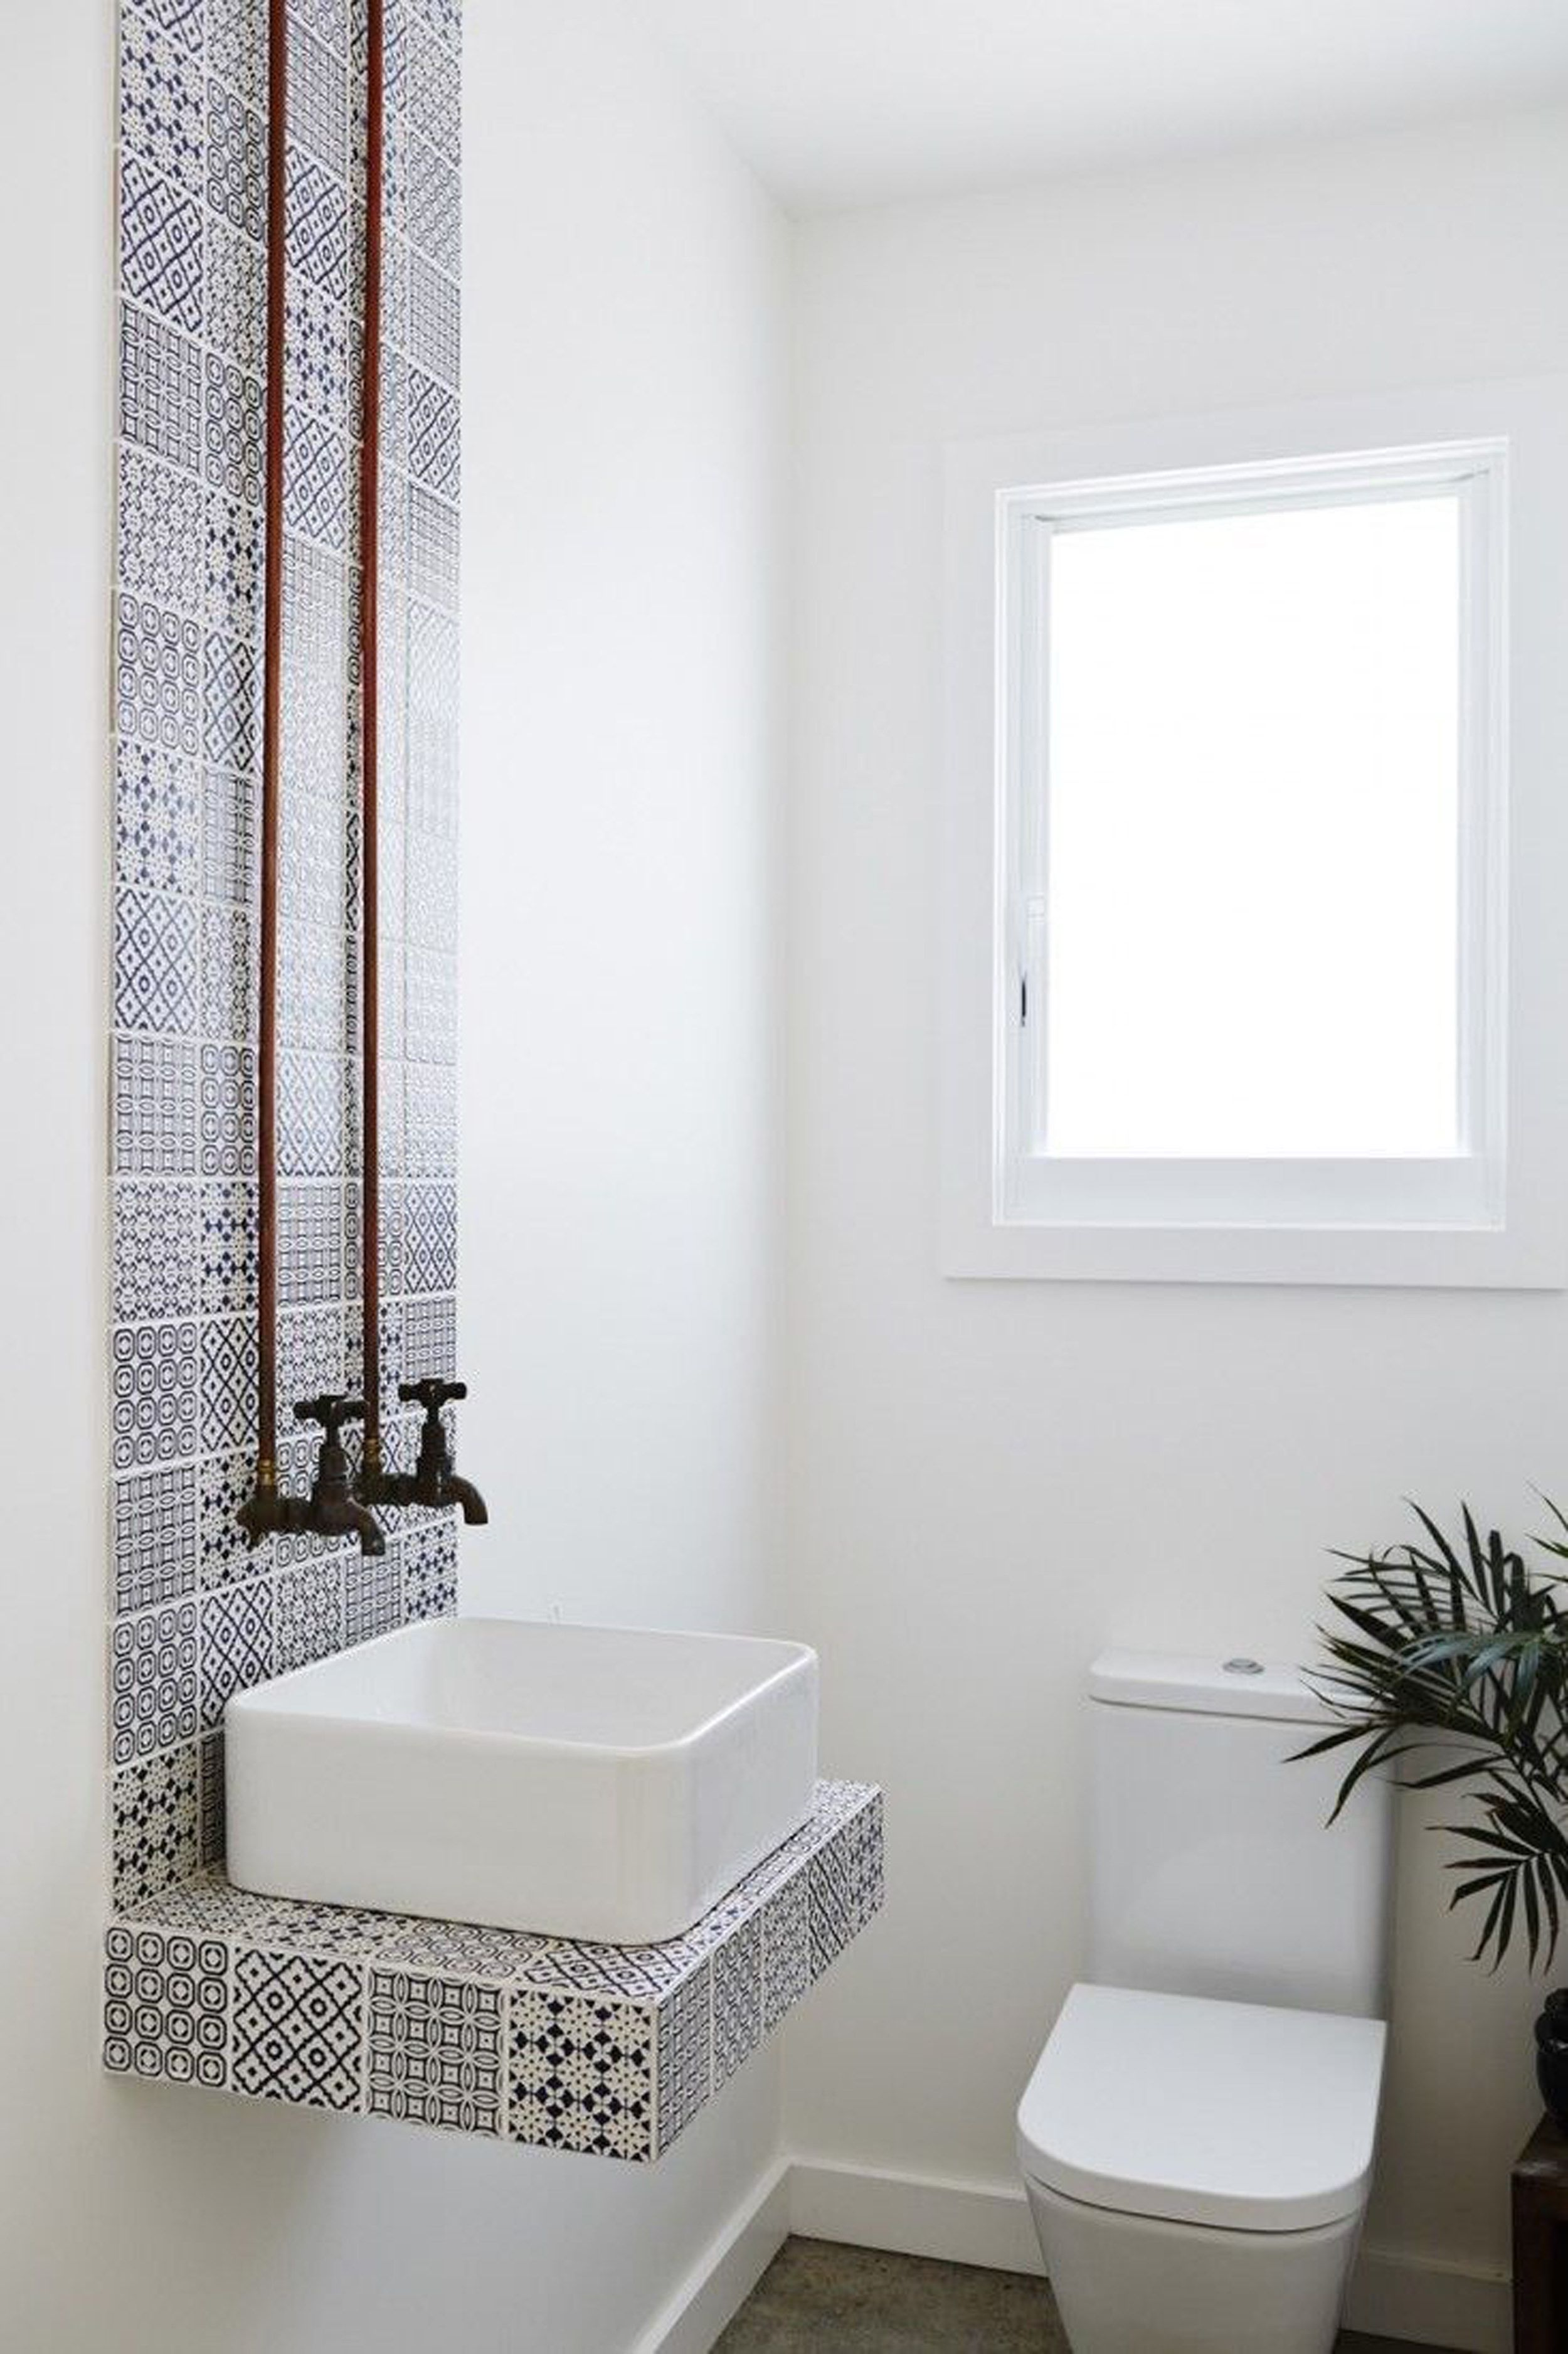 2018 Design Trends For The Bathroom Emily Henderson Bathroom Remodel Master Beautiful Small Bathrooms Small Bathroom Remodel